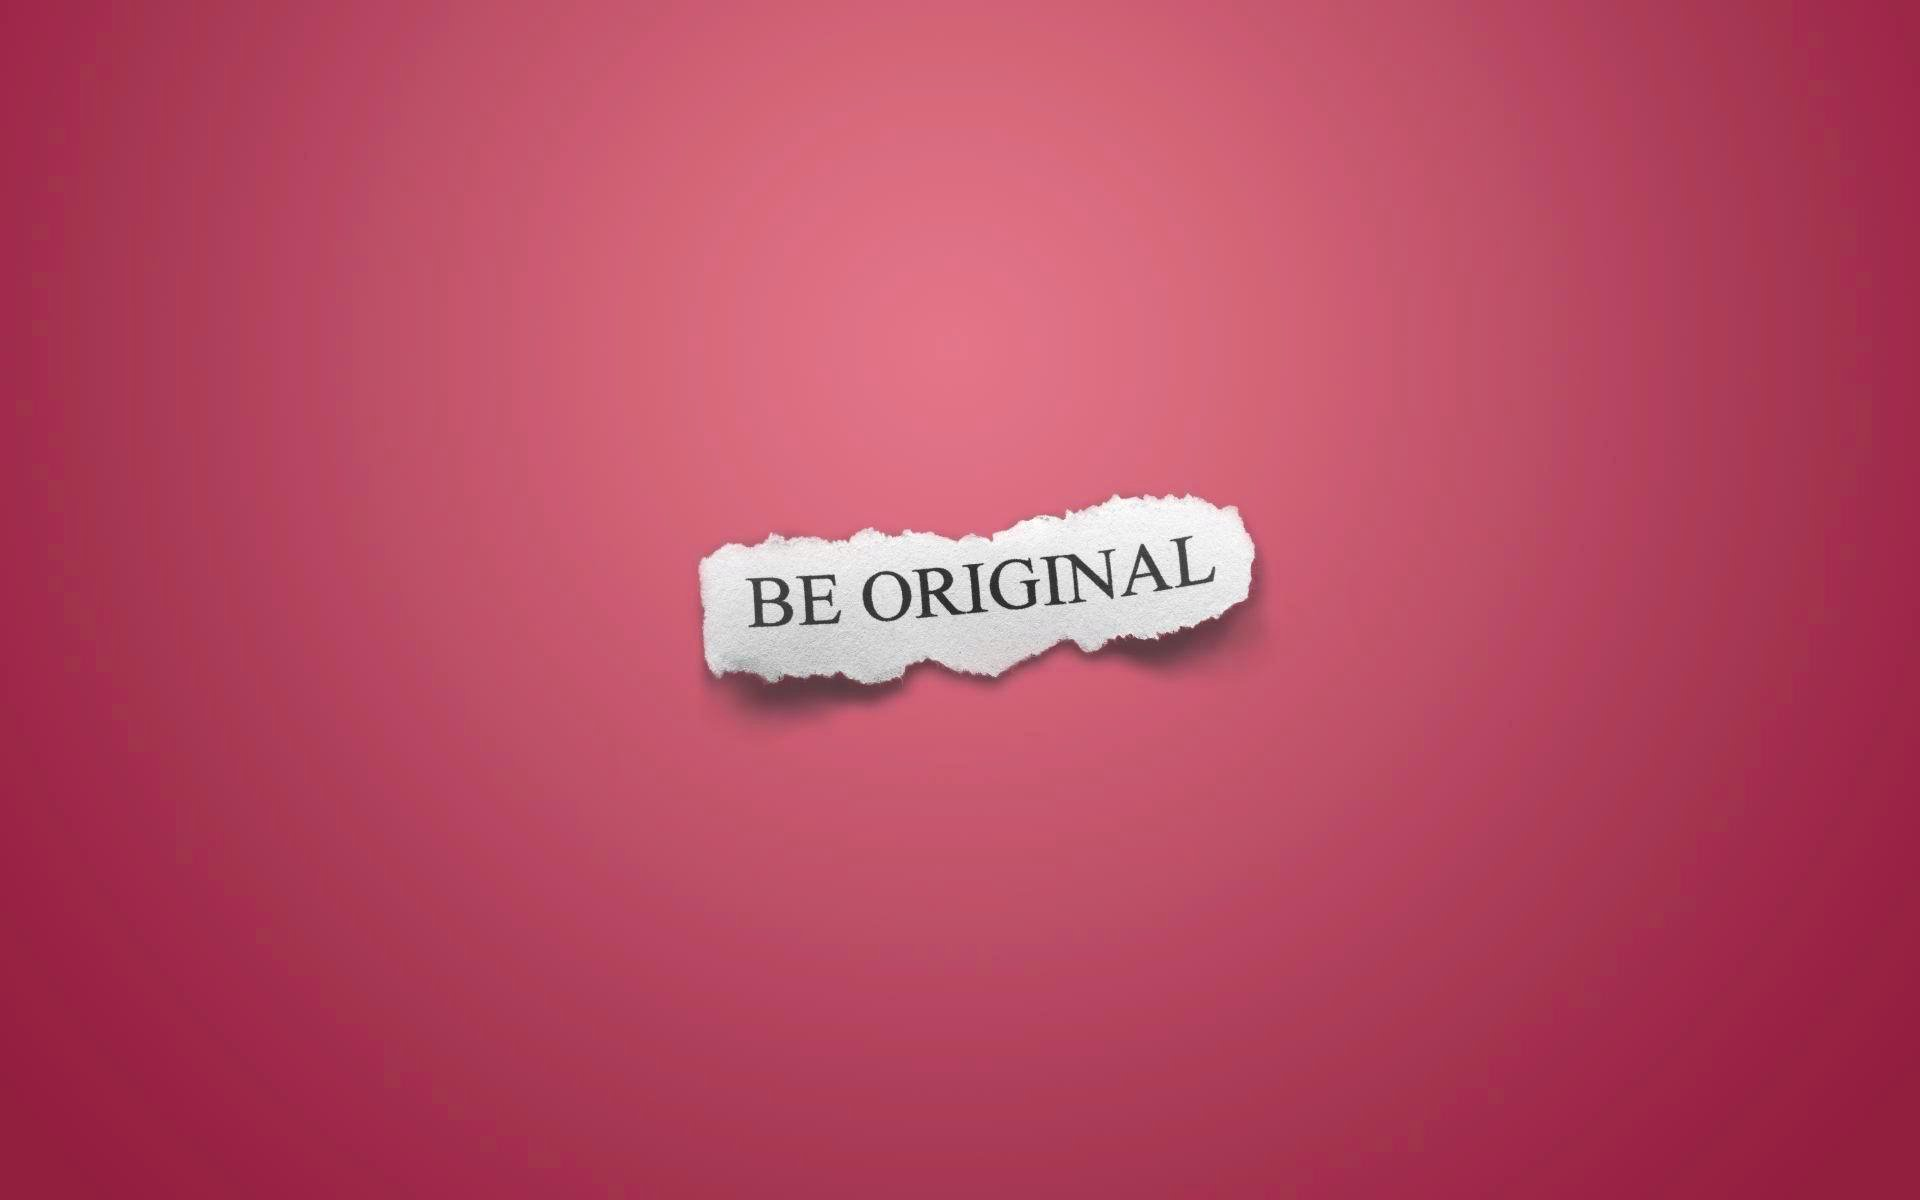 Free Backgrounds for Word Luxury Hd Pink Text Background iPhone Wallpaper